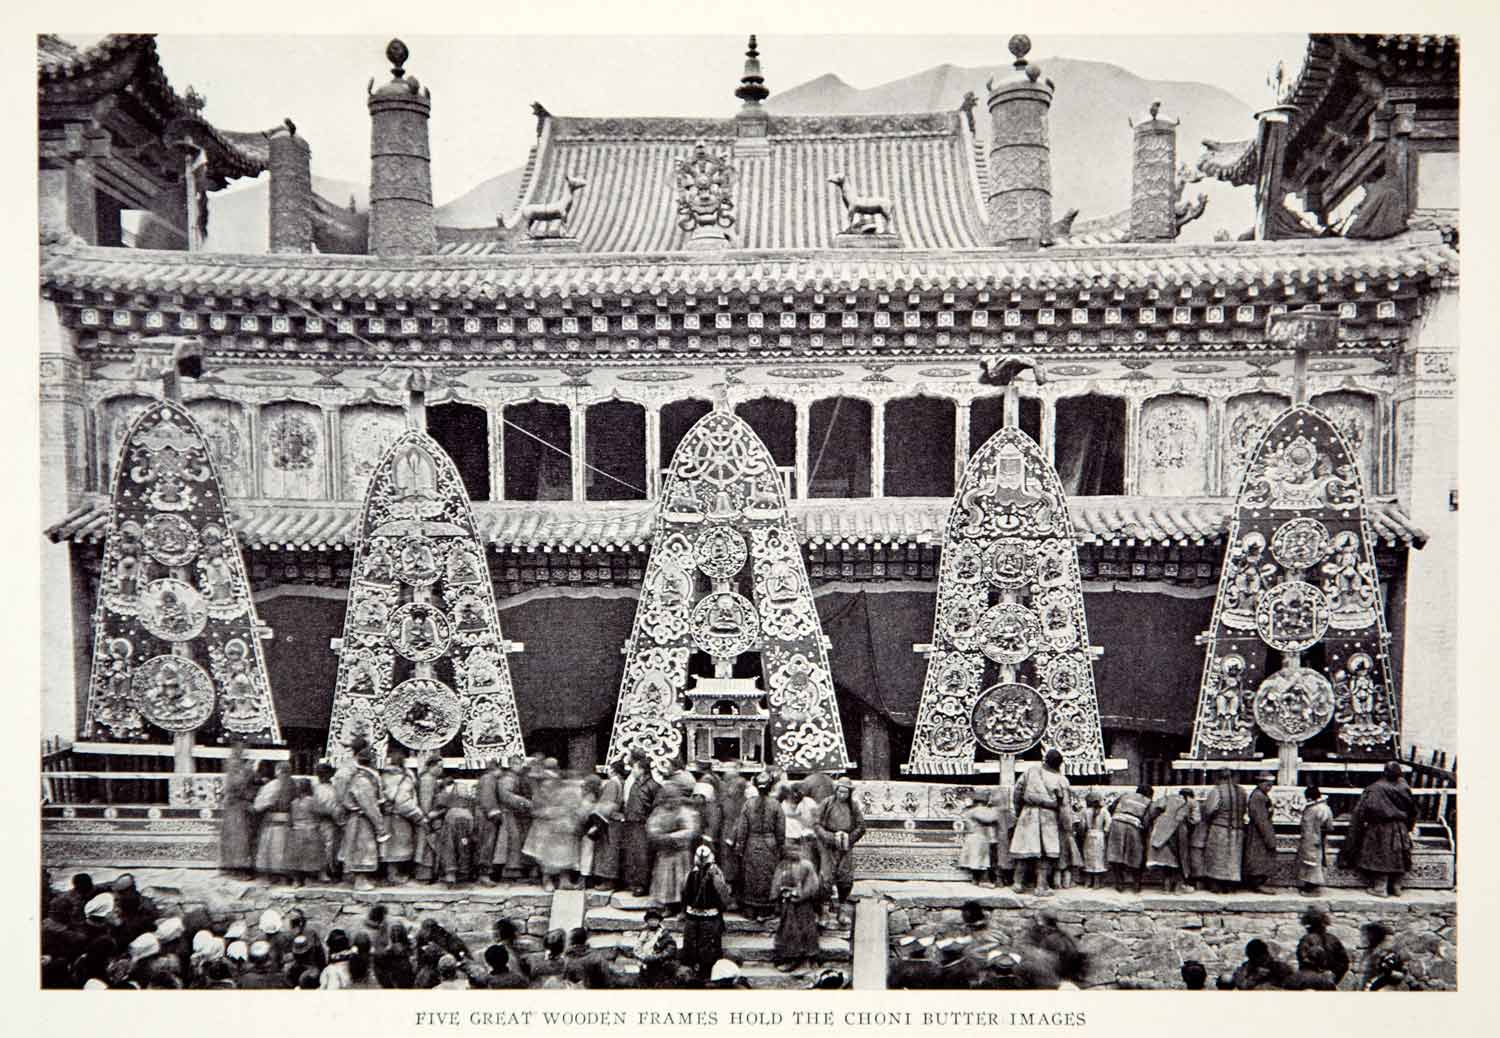 1928 Print Choni Monk Wooden Panels Butter Festival China Historical Image NGMA2